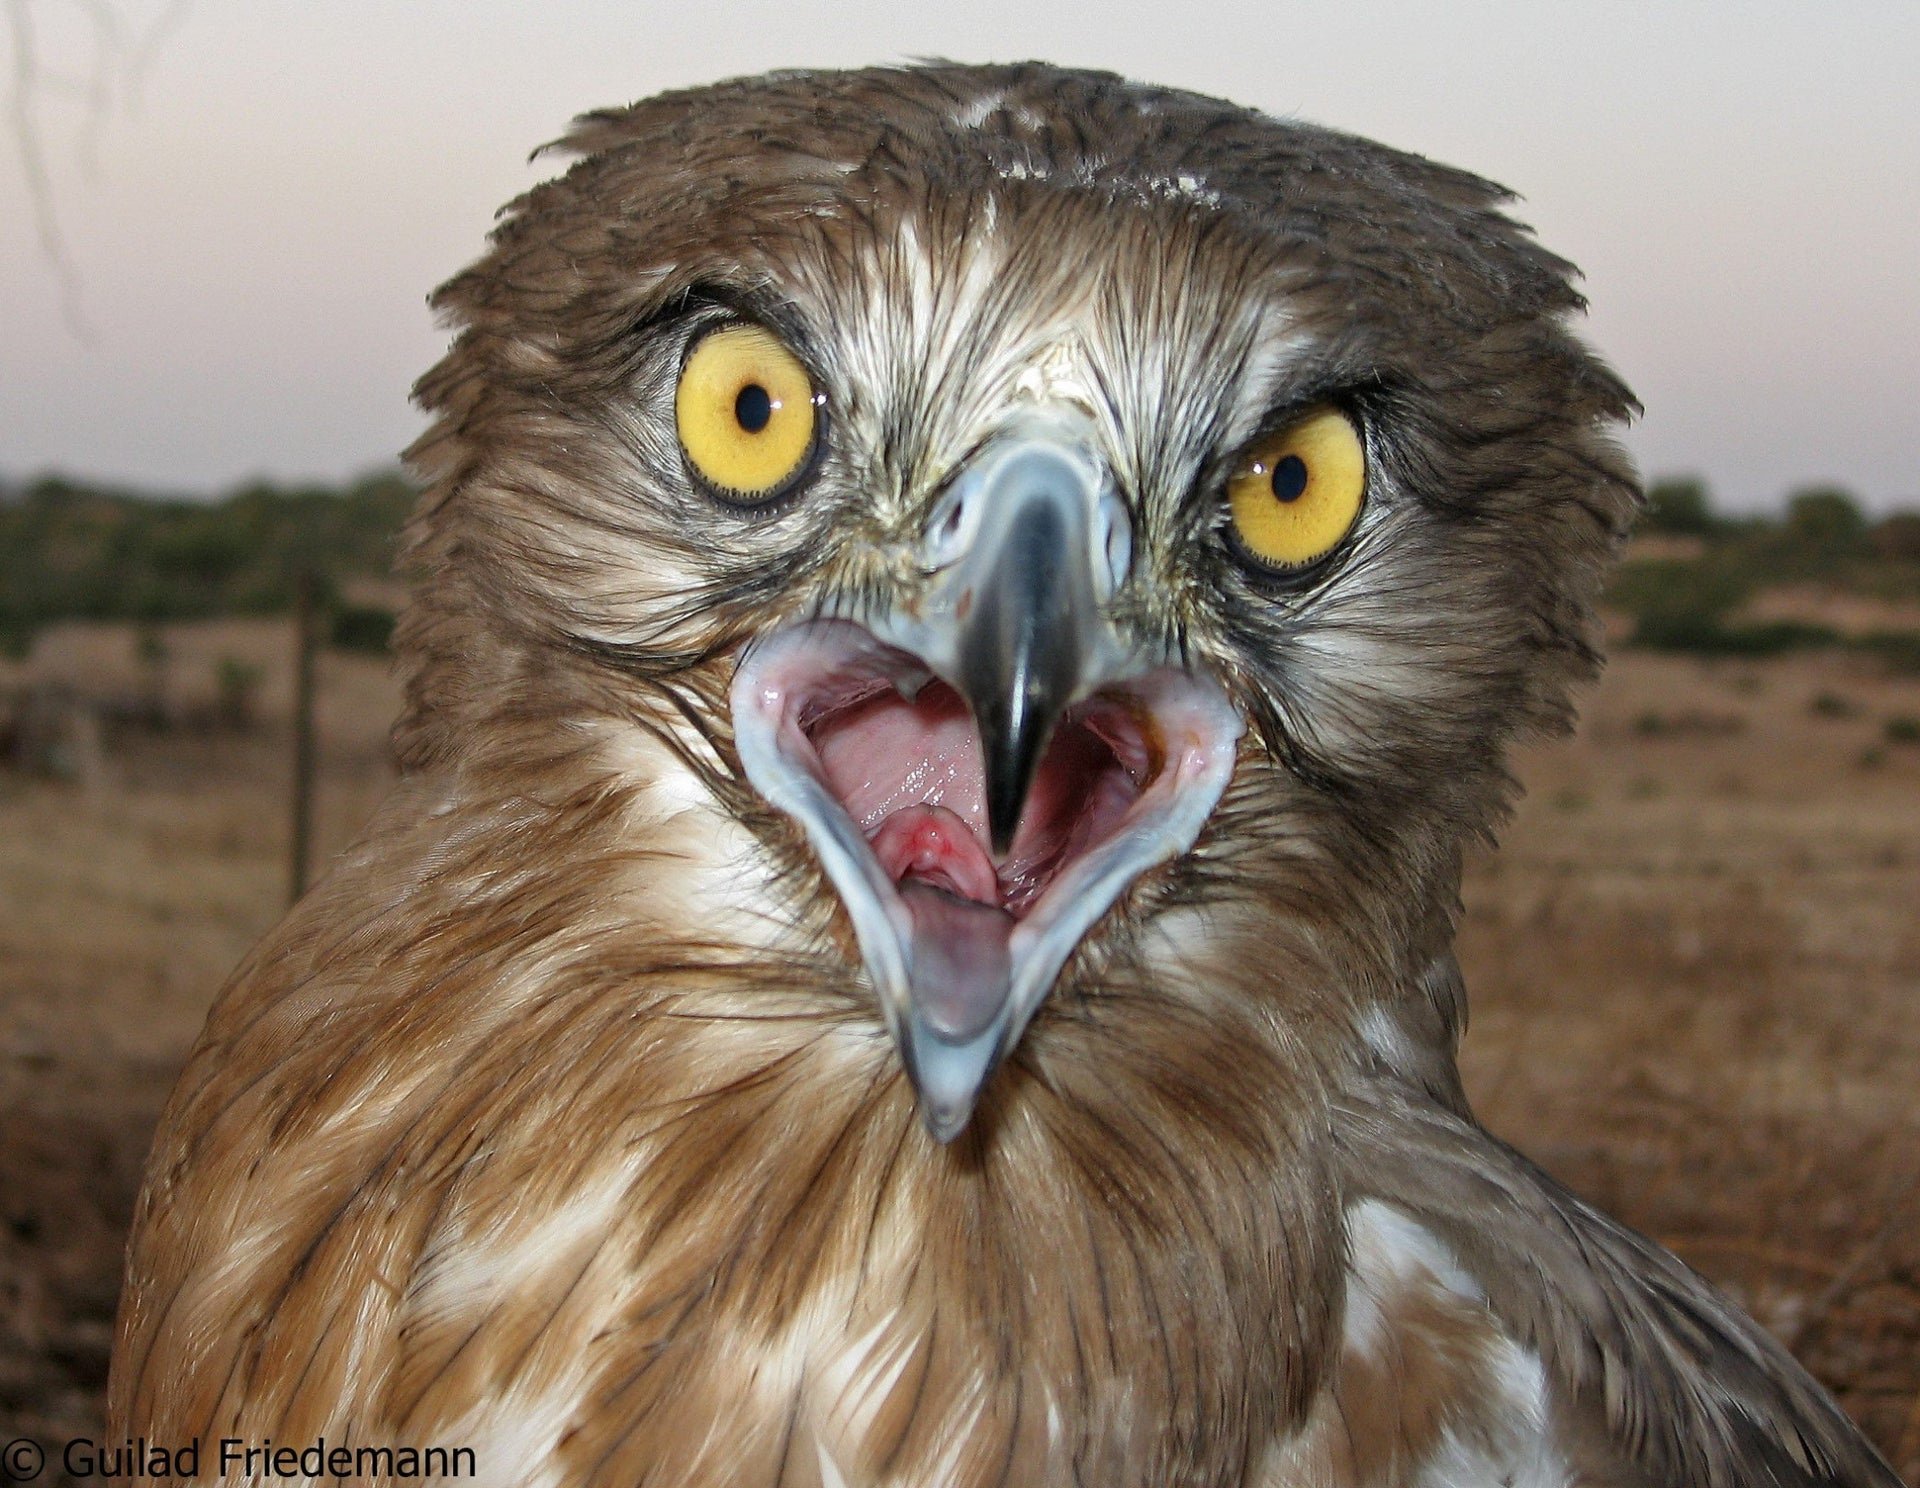 A short-toed eagle is one of the stars of nature's 'Big Brother' show.